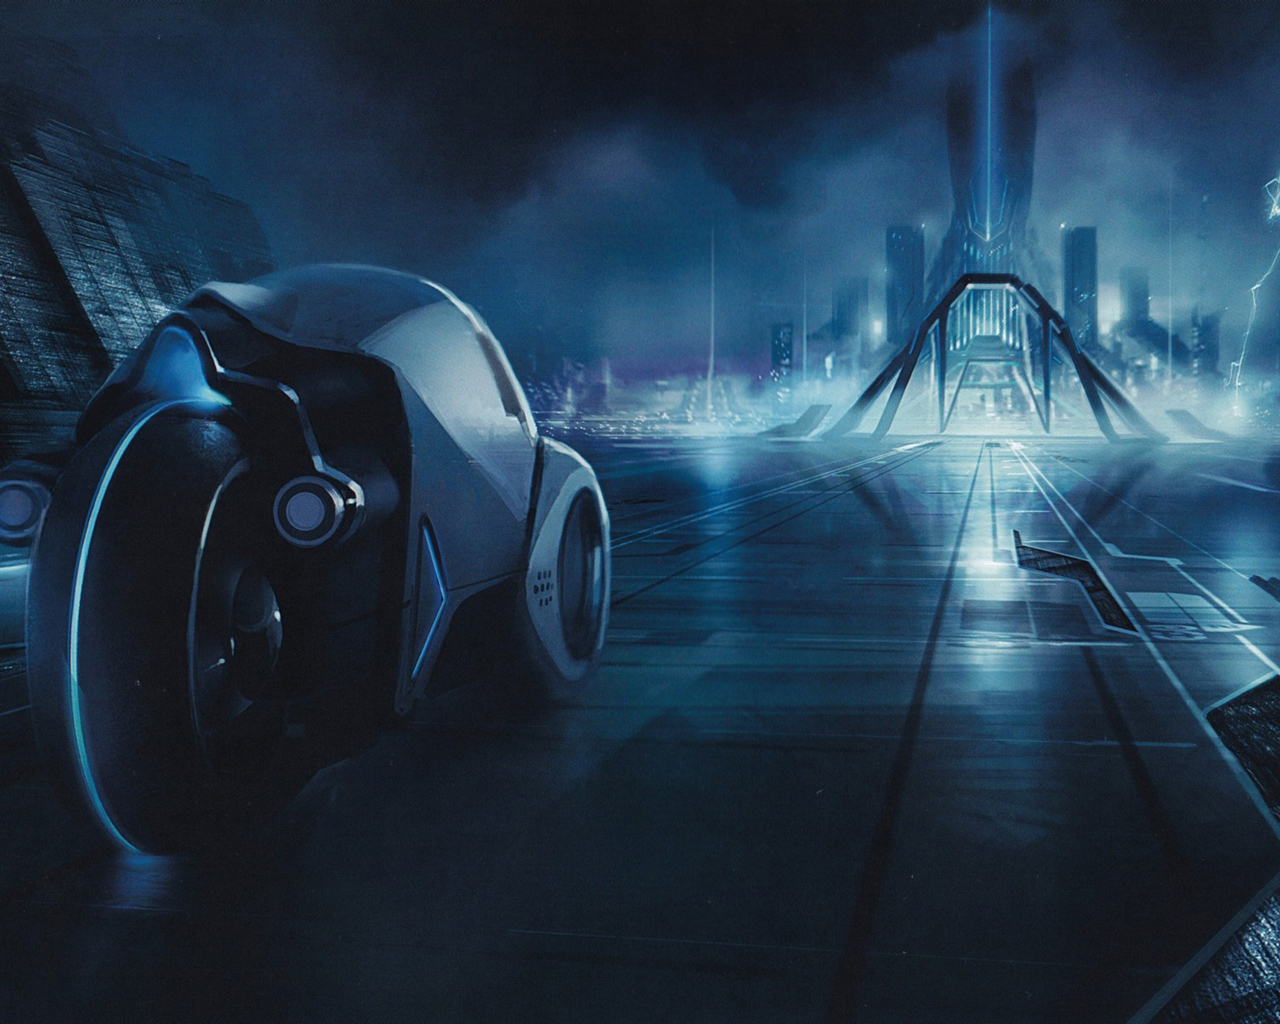 Tron Movie Scene